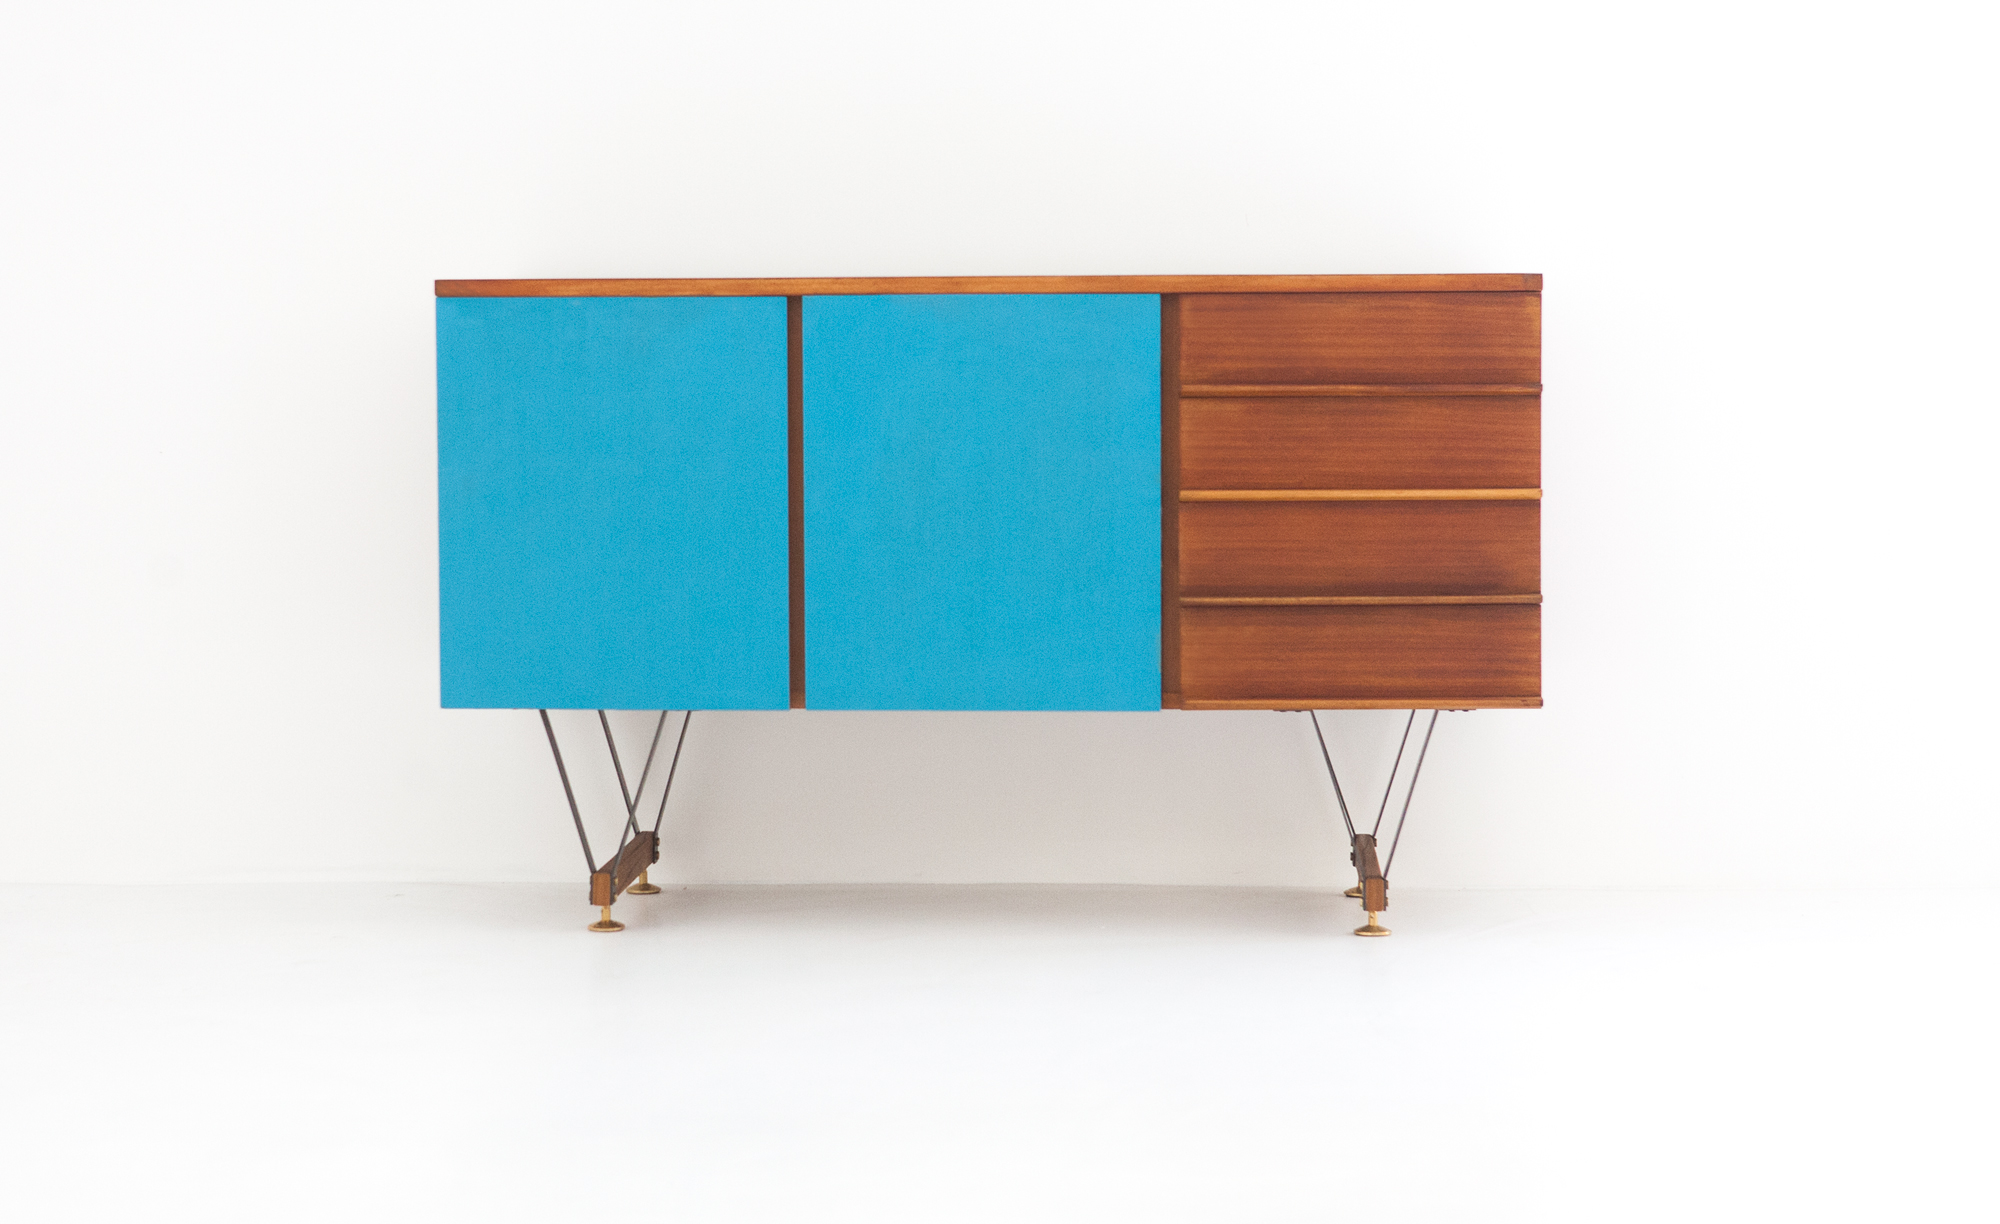 Sideboard 75 2 retro4m for Sideboard 2 m lang